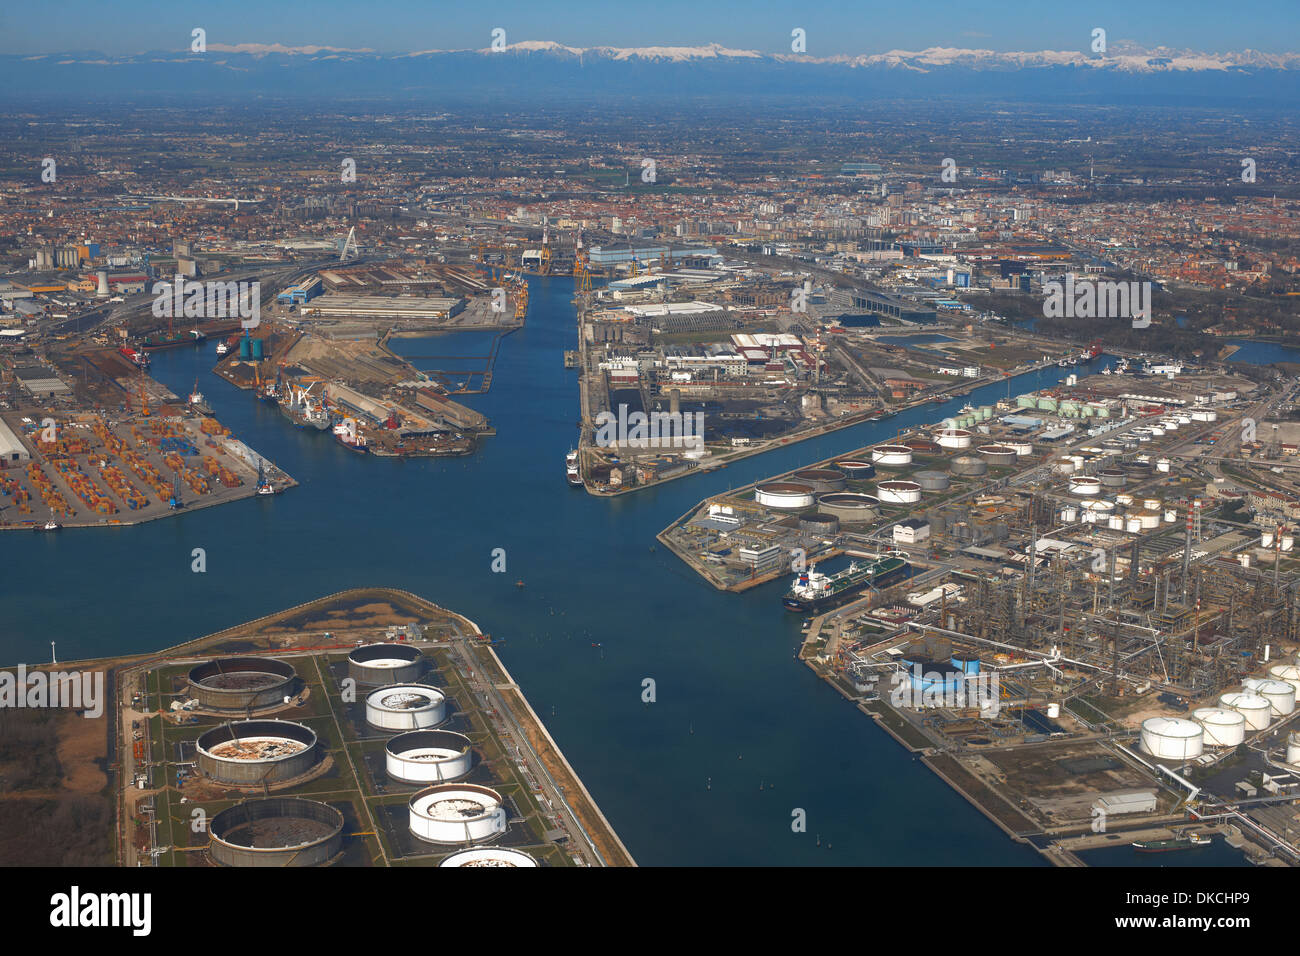 Aerial view of industrial port, Venice, Italy - Stock Image